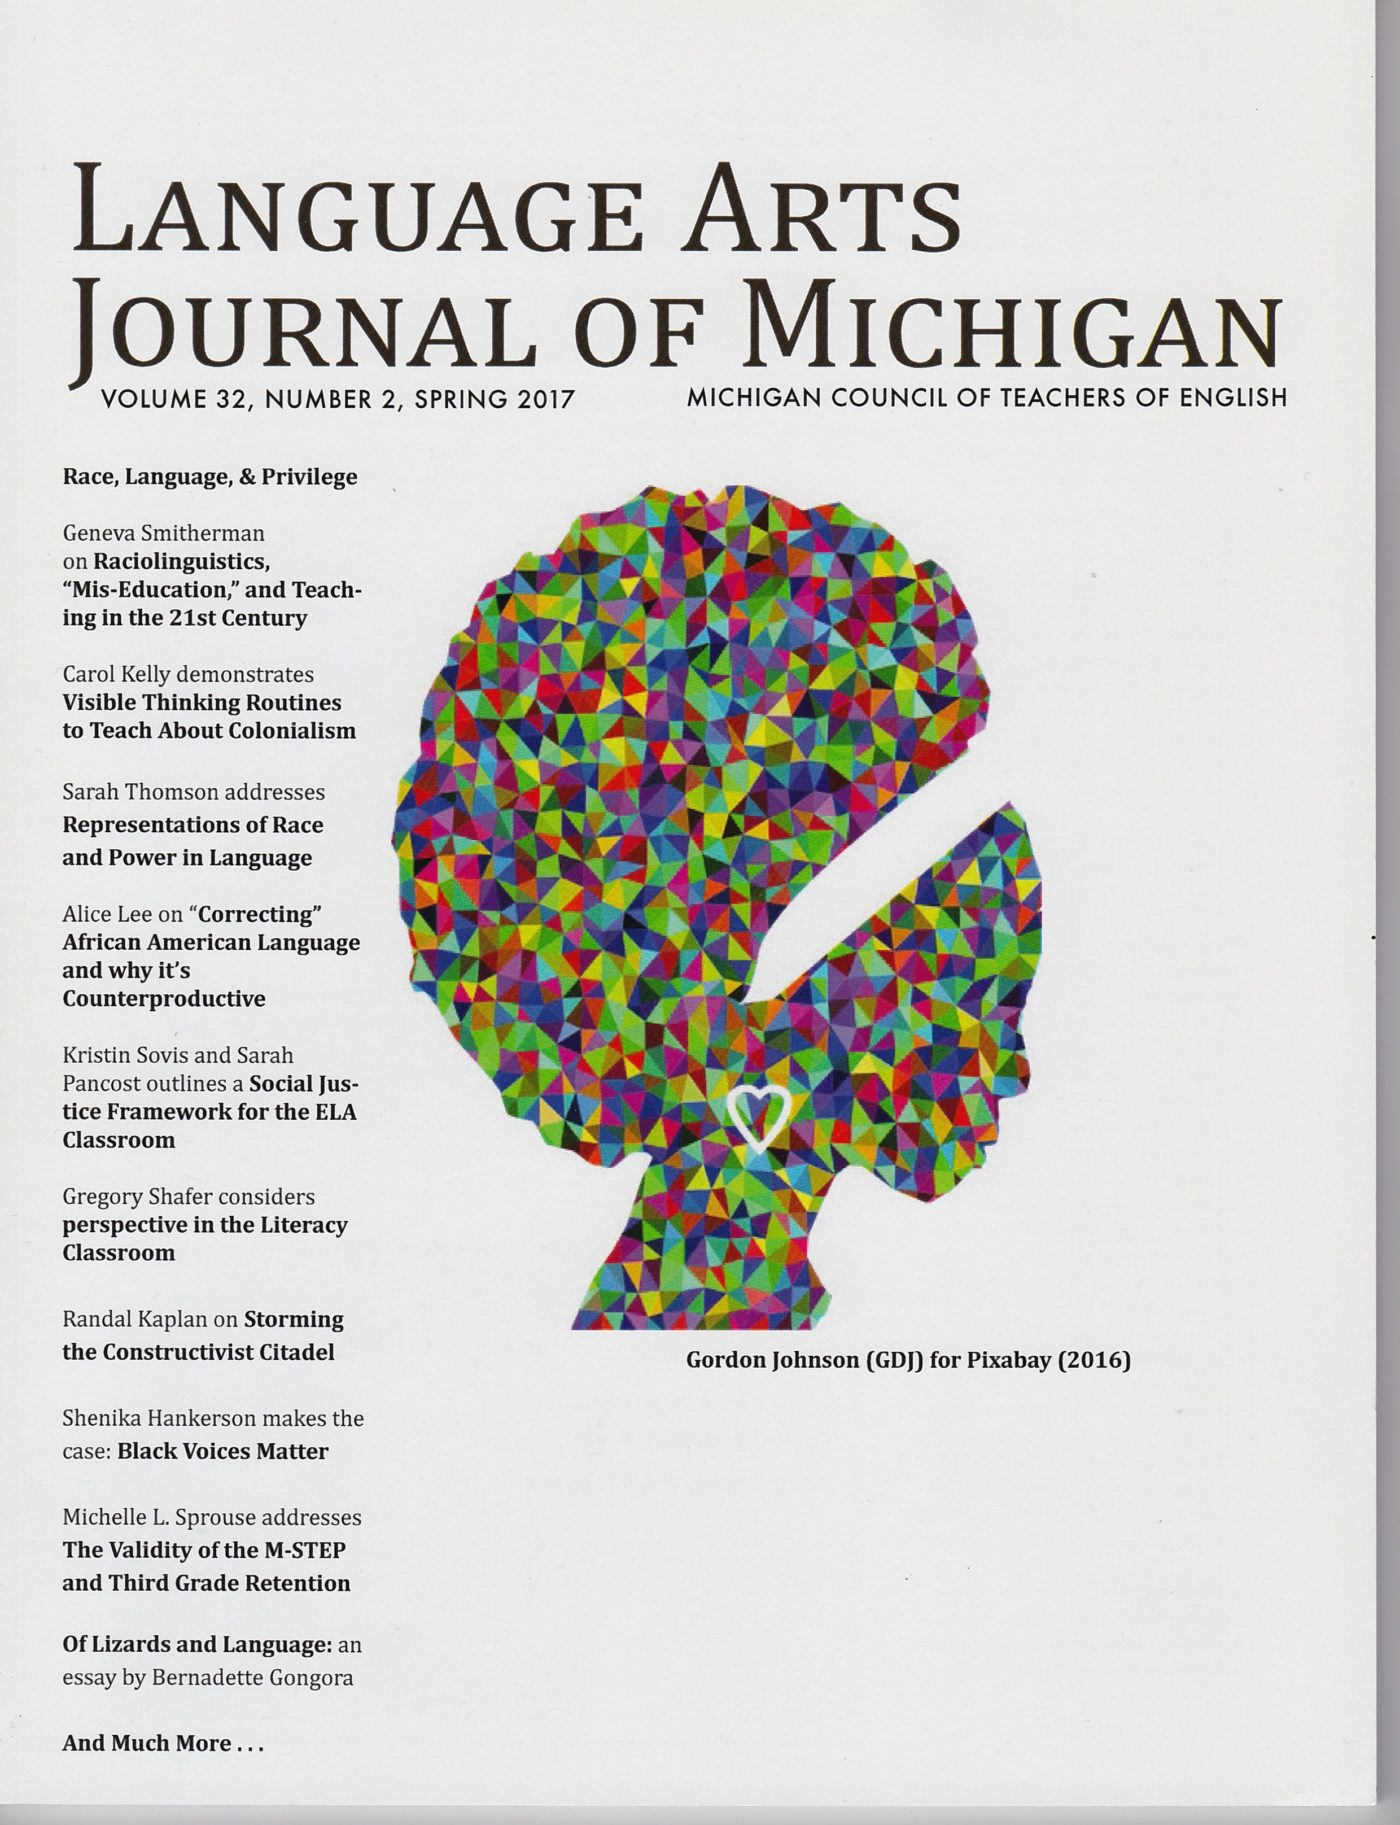 The consequential validity of the M-STEP | Language Arts Journal of Michigan